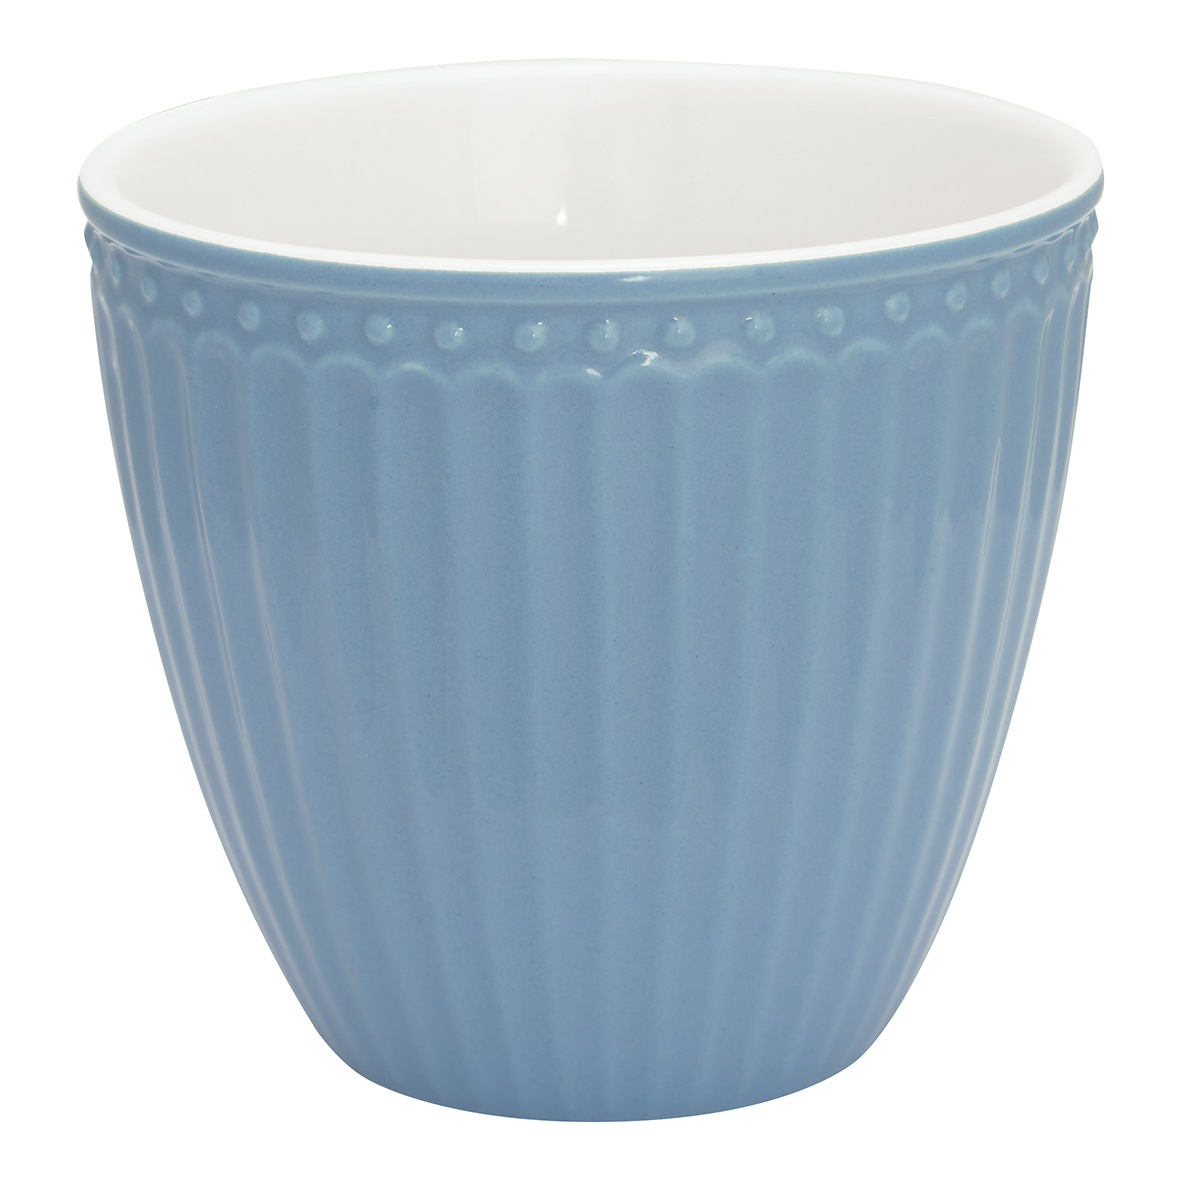 Greengate Lattecup Alice sky blue Everyday Collection